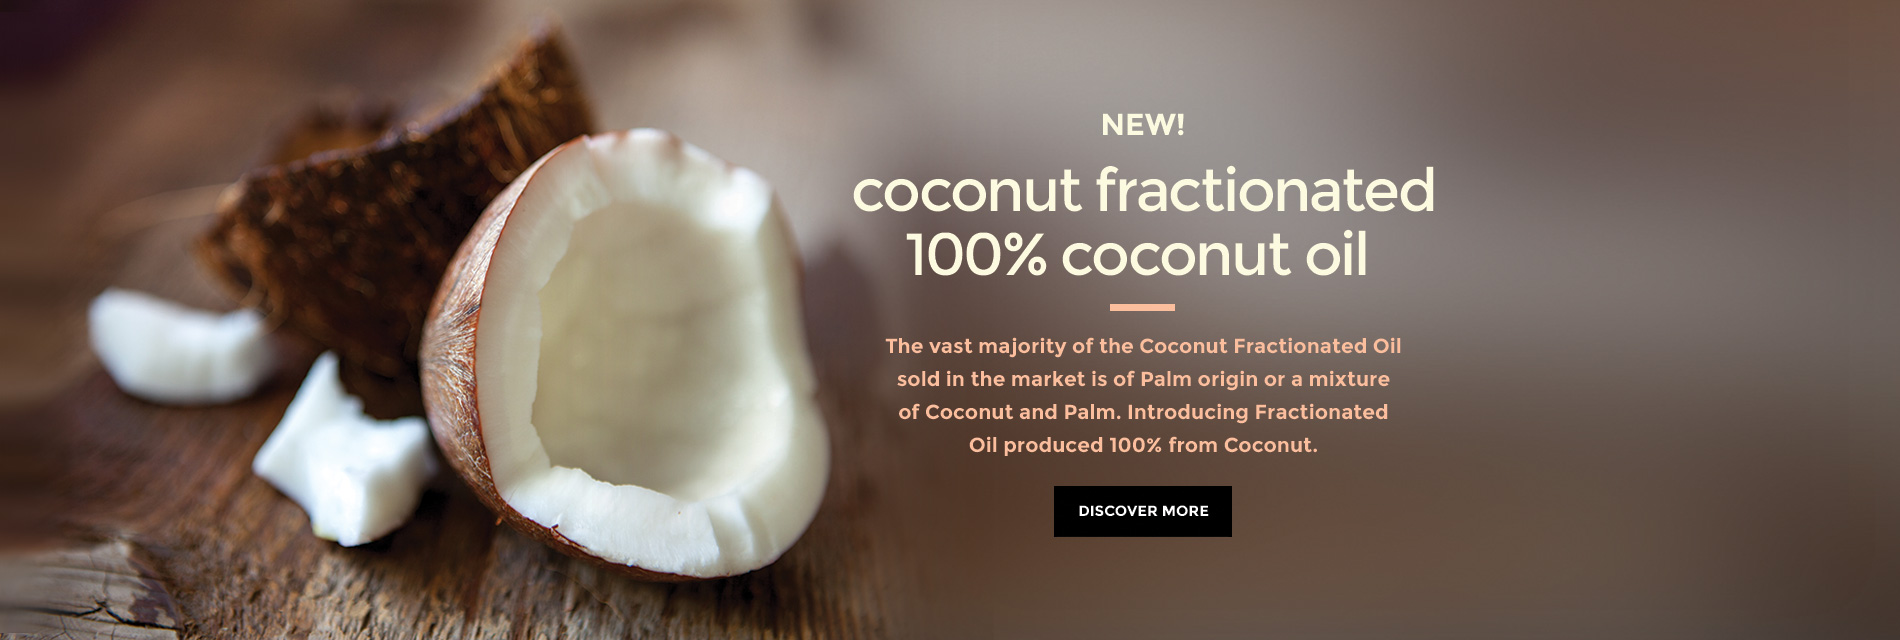 Coconut Fractionated 100% Coconut Oil